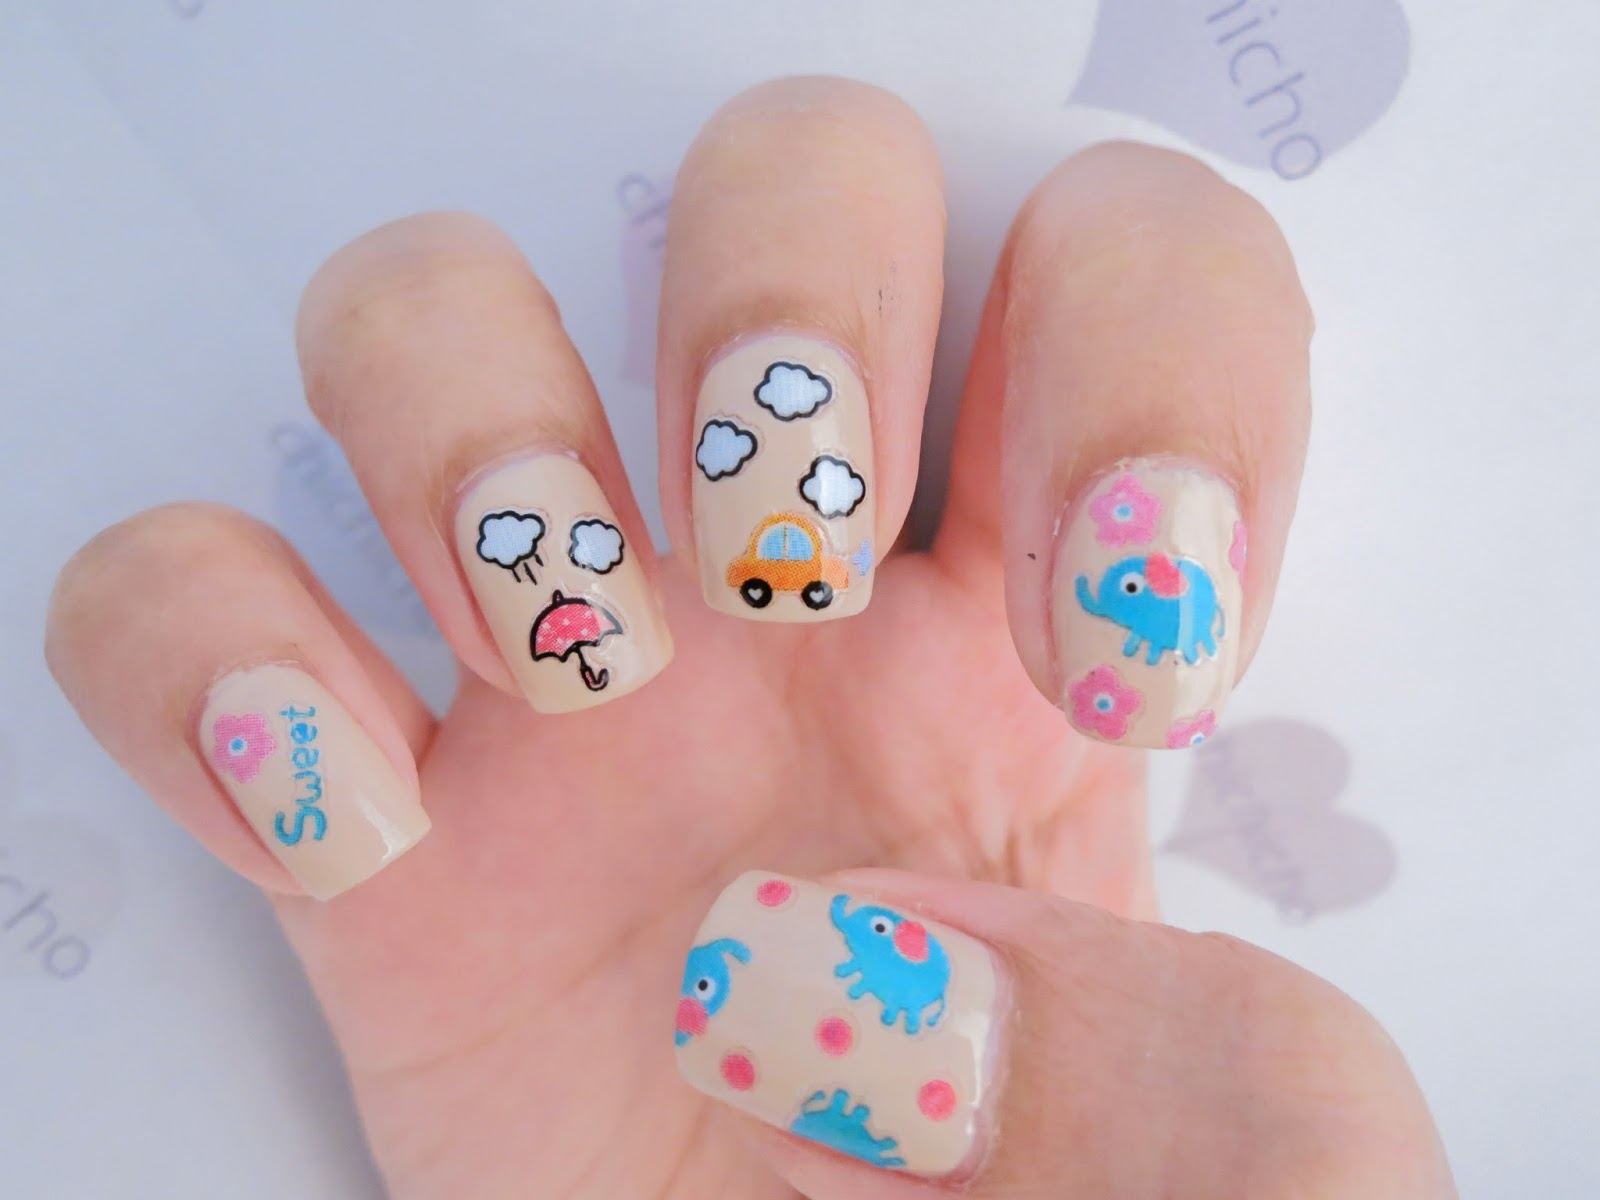 Elephant Stickers Nail Art! (Born Pretty Store review) - chichicho~